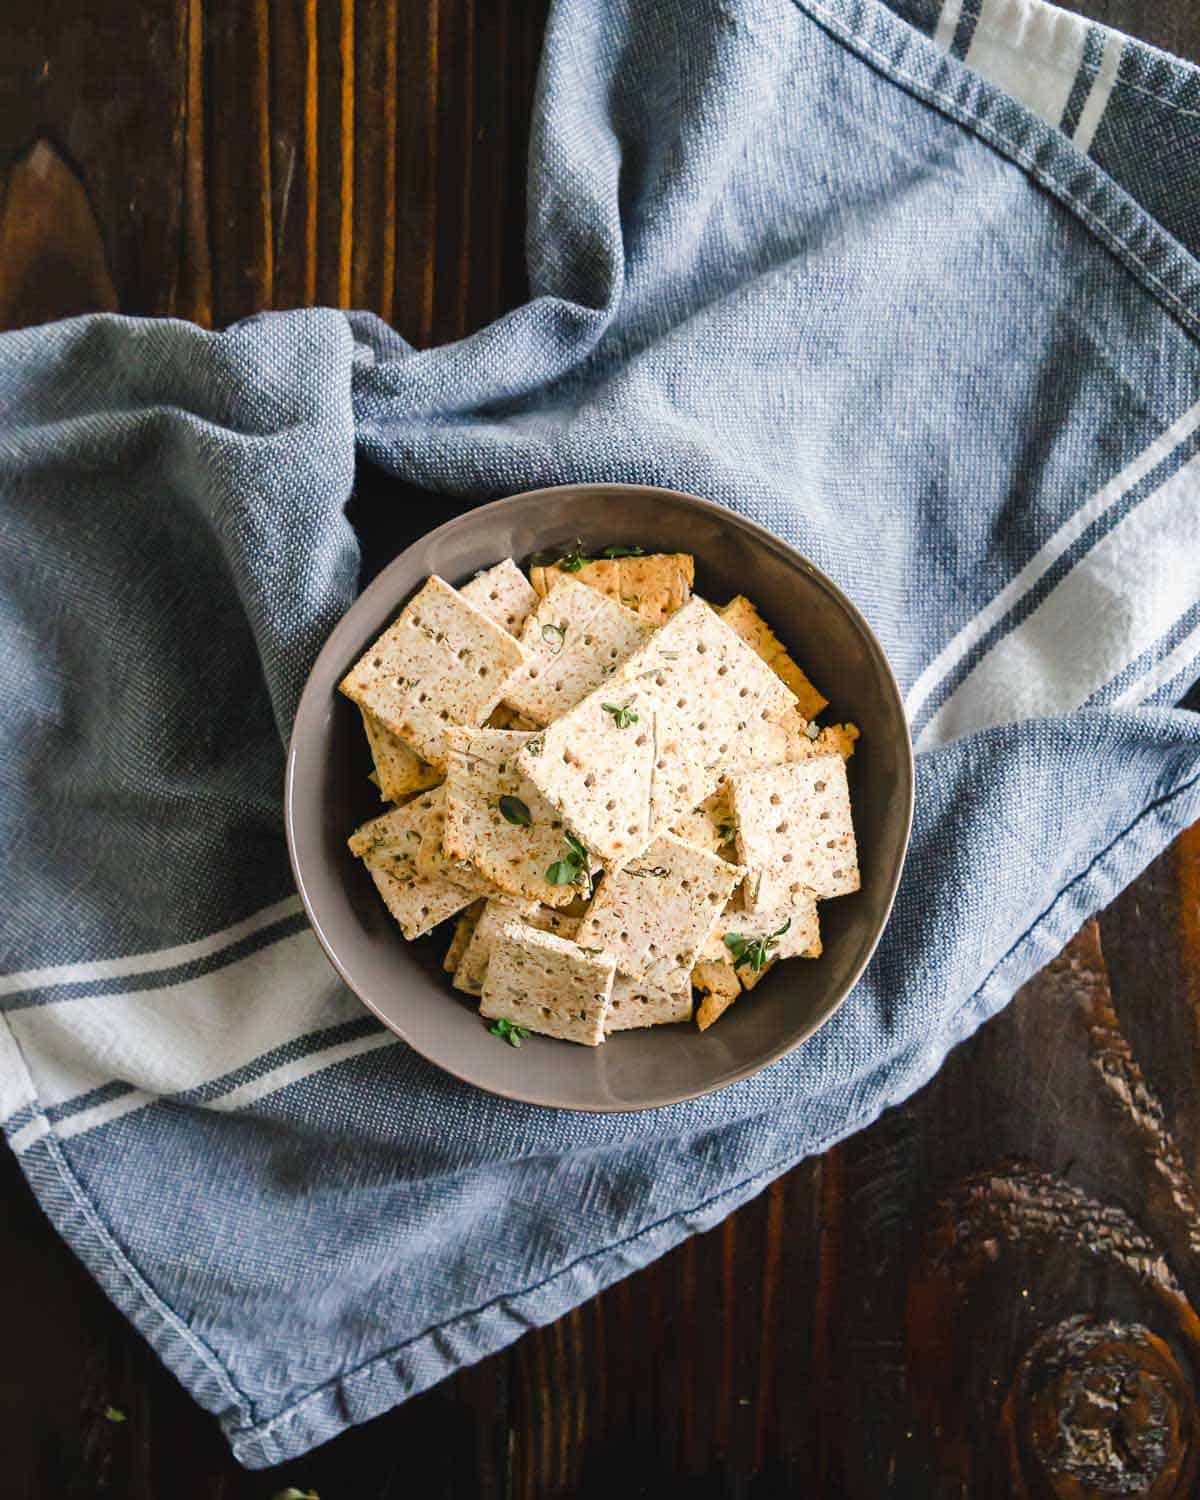 Repurpose almond pulp into these easy homemade almond pulp crackers - vegan and gluten free!